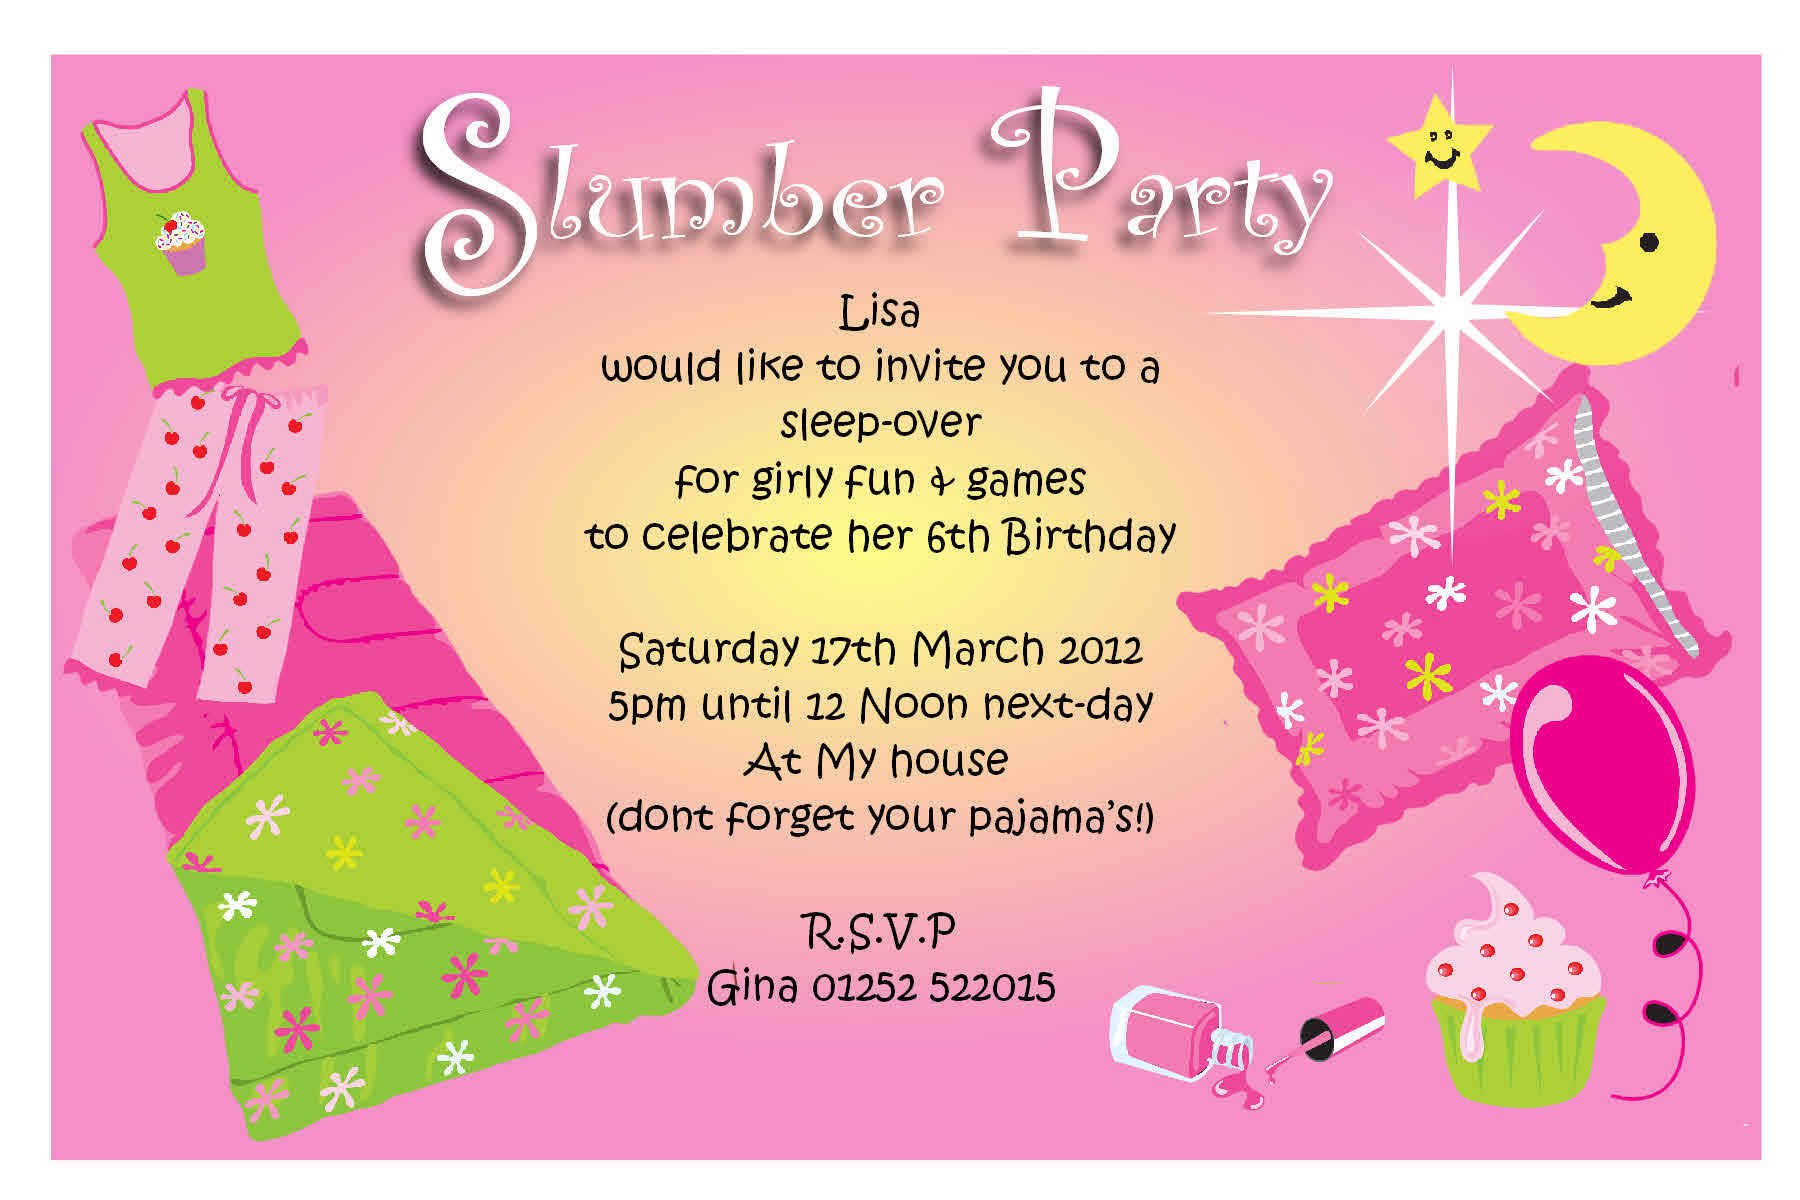 17th birthday invitation templates ; luau-birthday-party-invitation-wording-great-kids-birthday-invitation-message-images-invitation-card